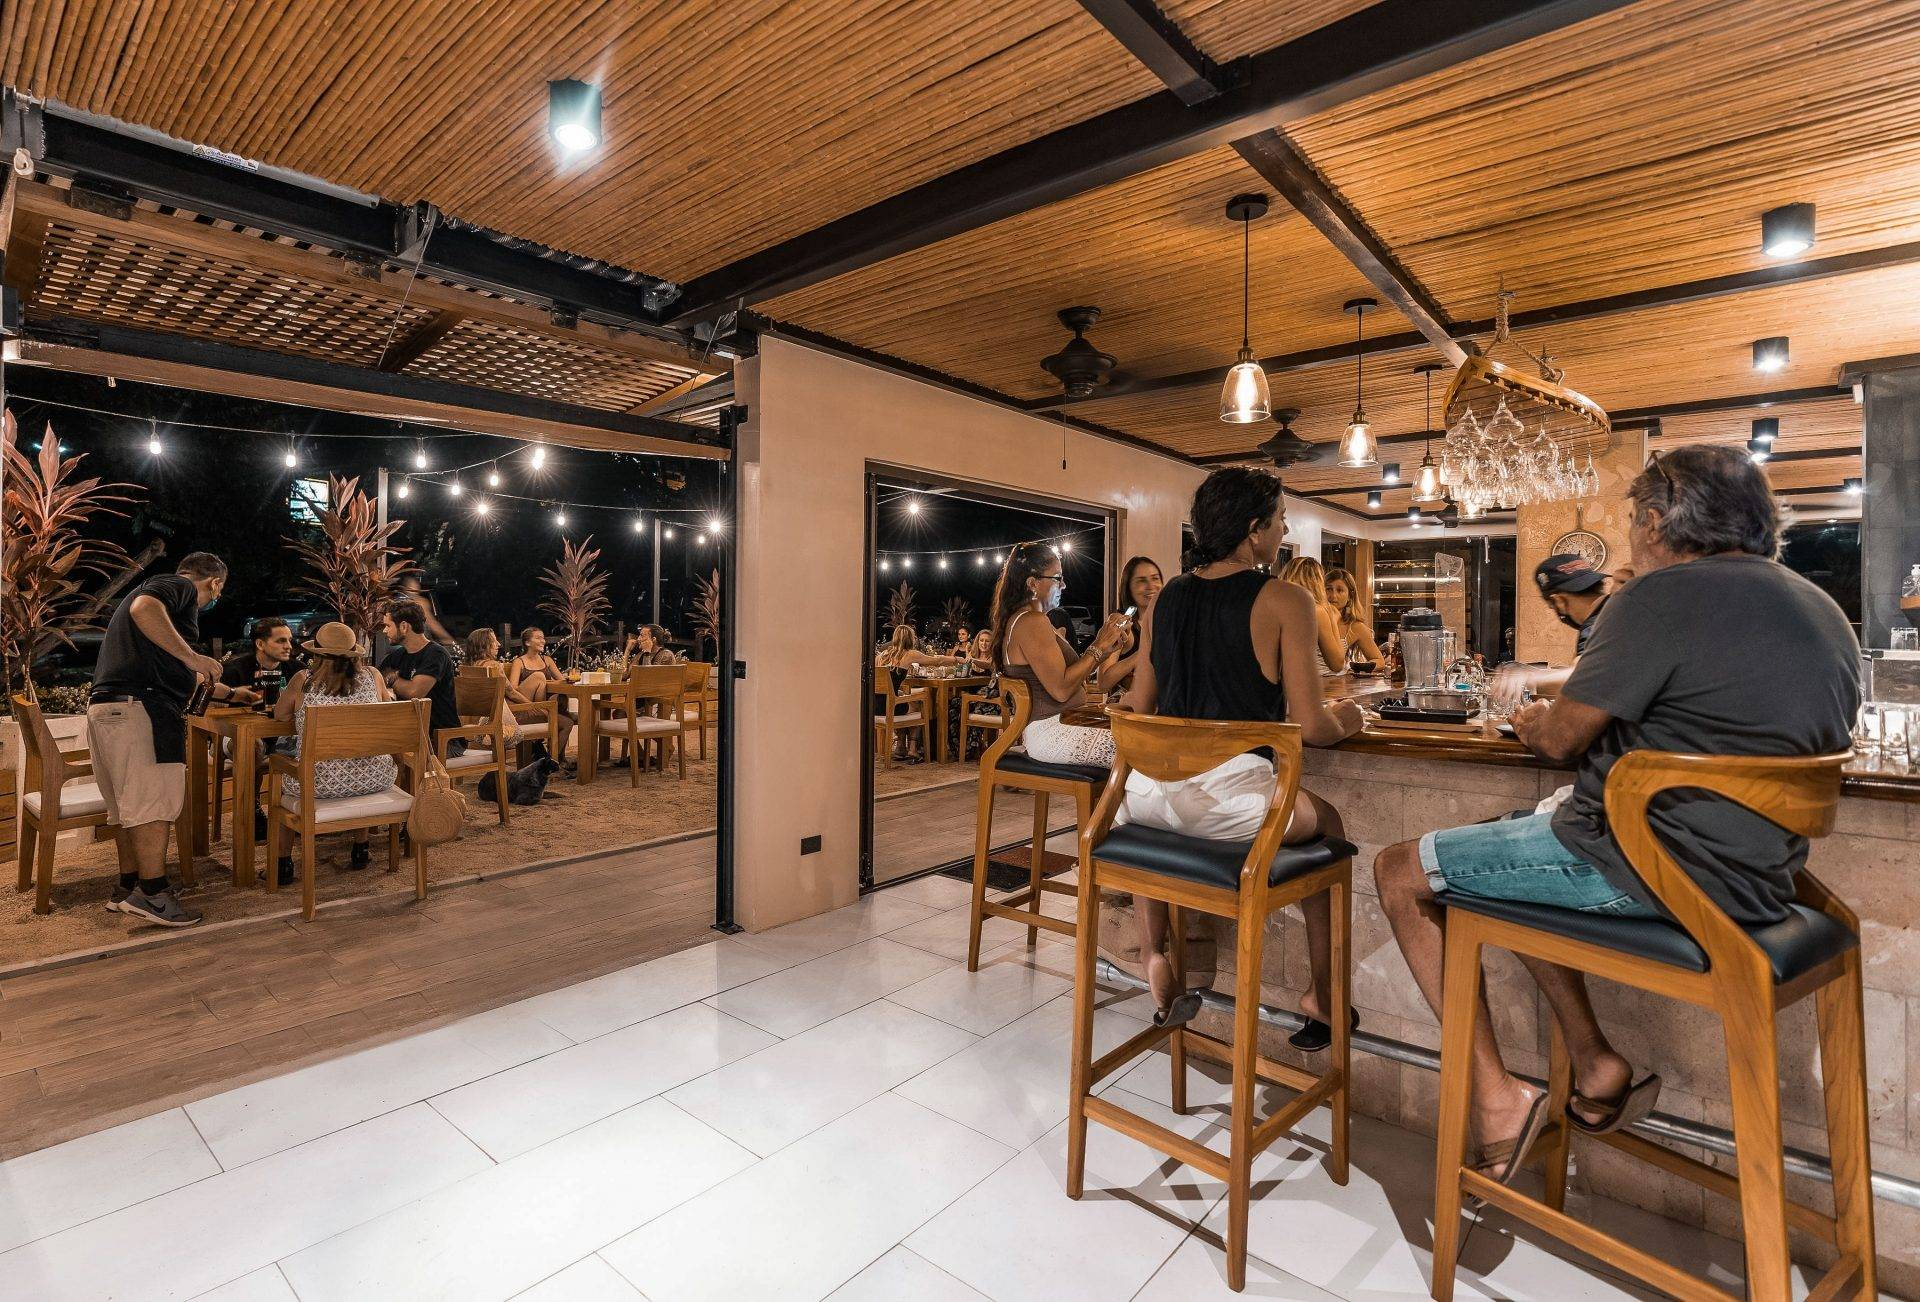 dine with toes in sand at Tamarindo restaurants